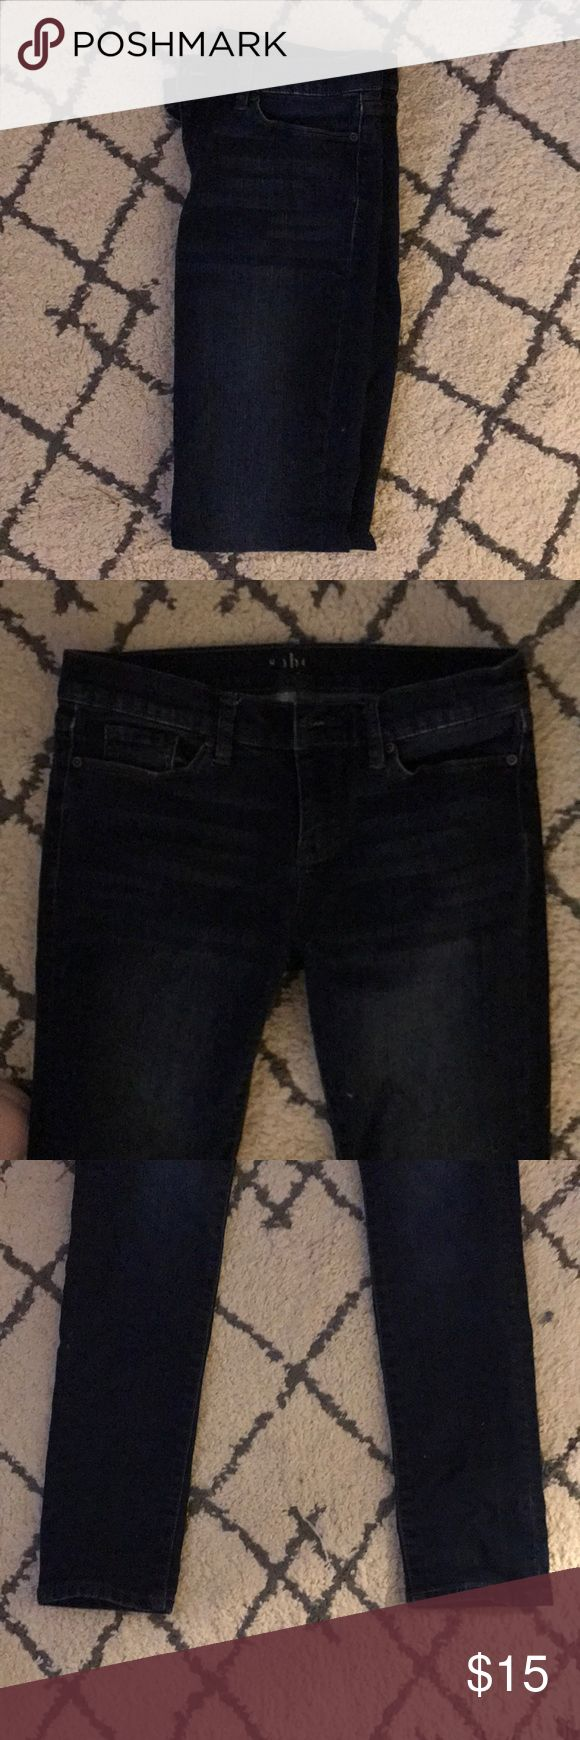 New York & Co Skinny Jeans Love these! Just don't fit me. New York & Company Jeans Skinny